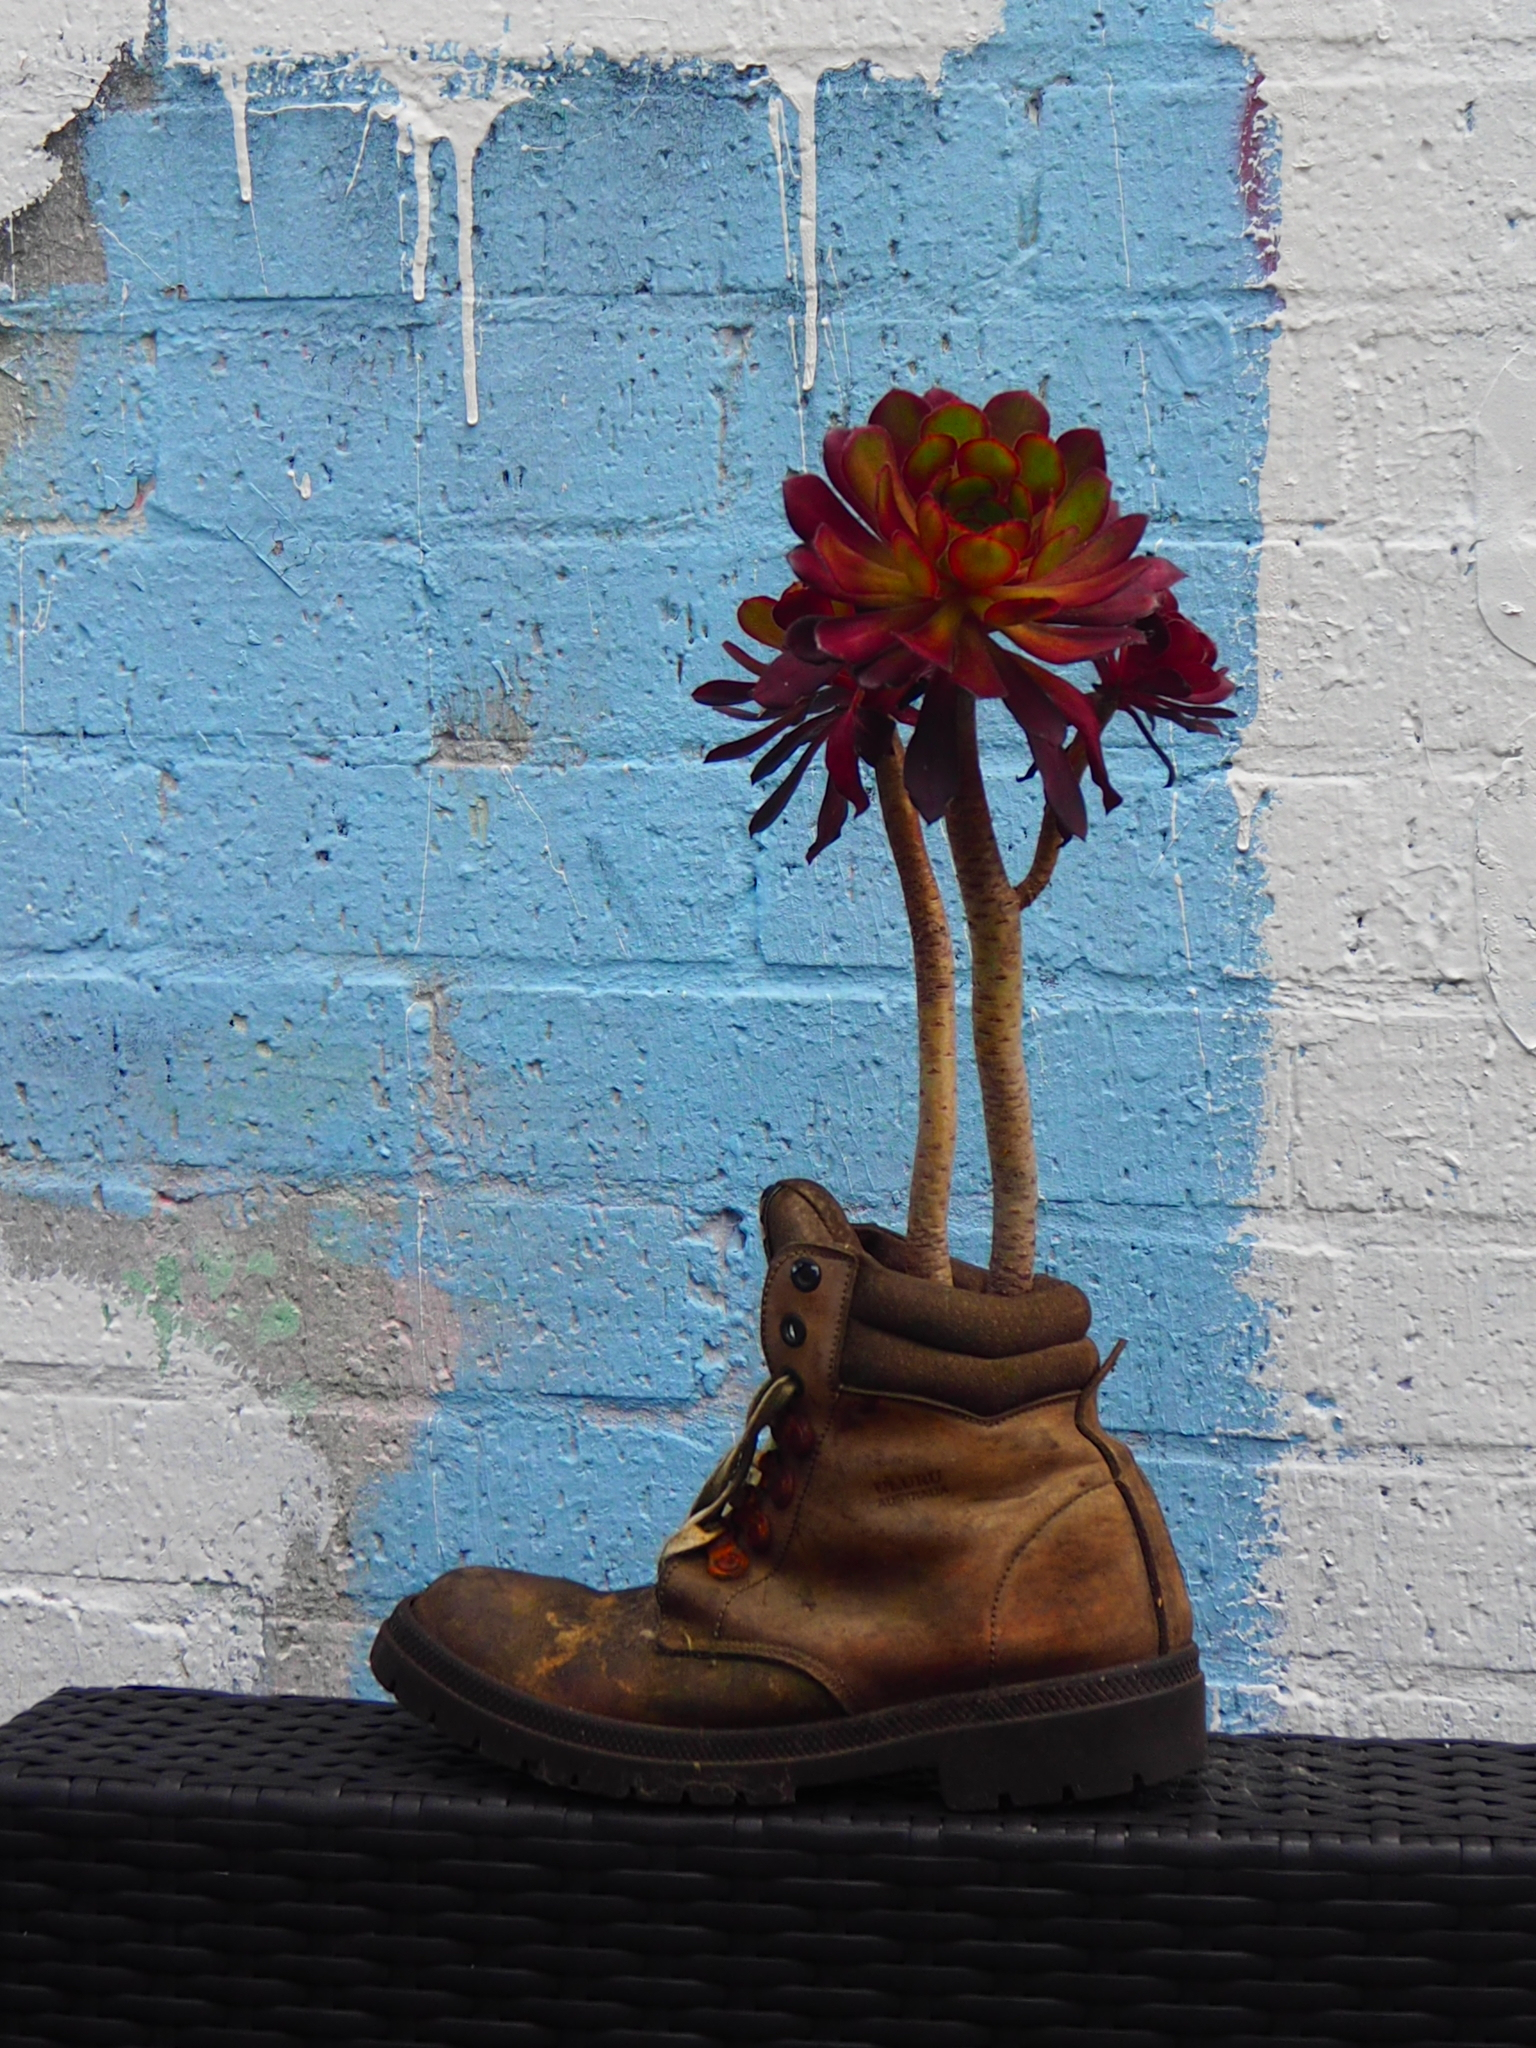 Re-boot your garden - Do you get that feeling of sadness when throwing out old things, and think... it's not quite dead yet... it could have another life as something...